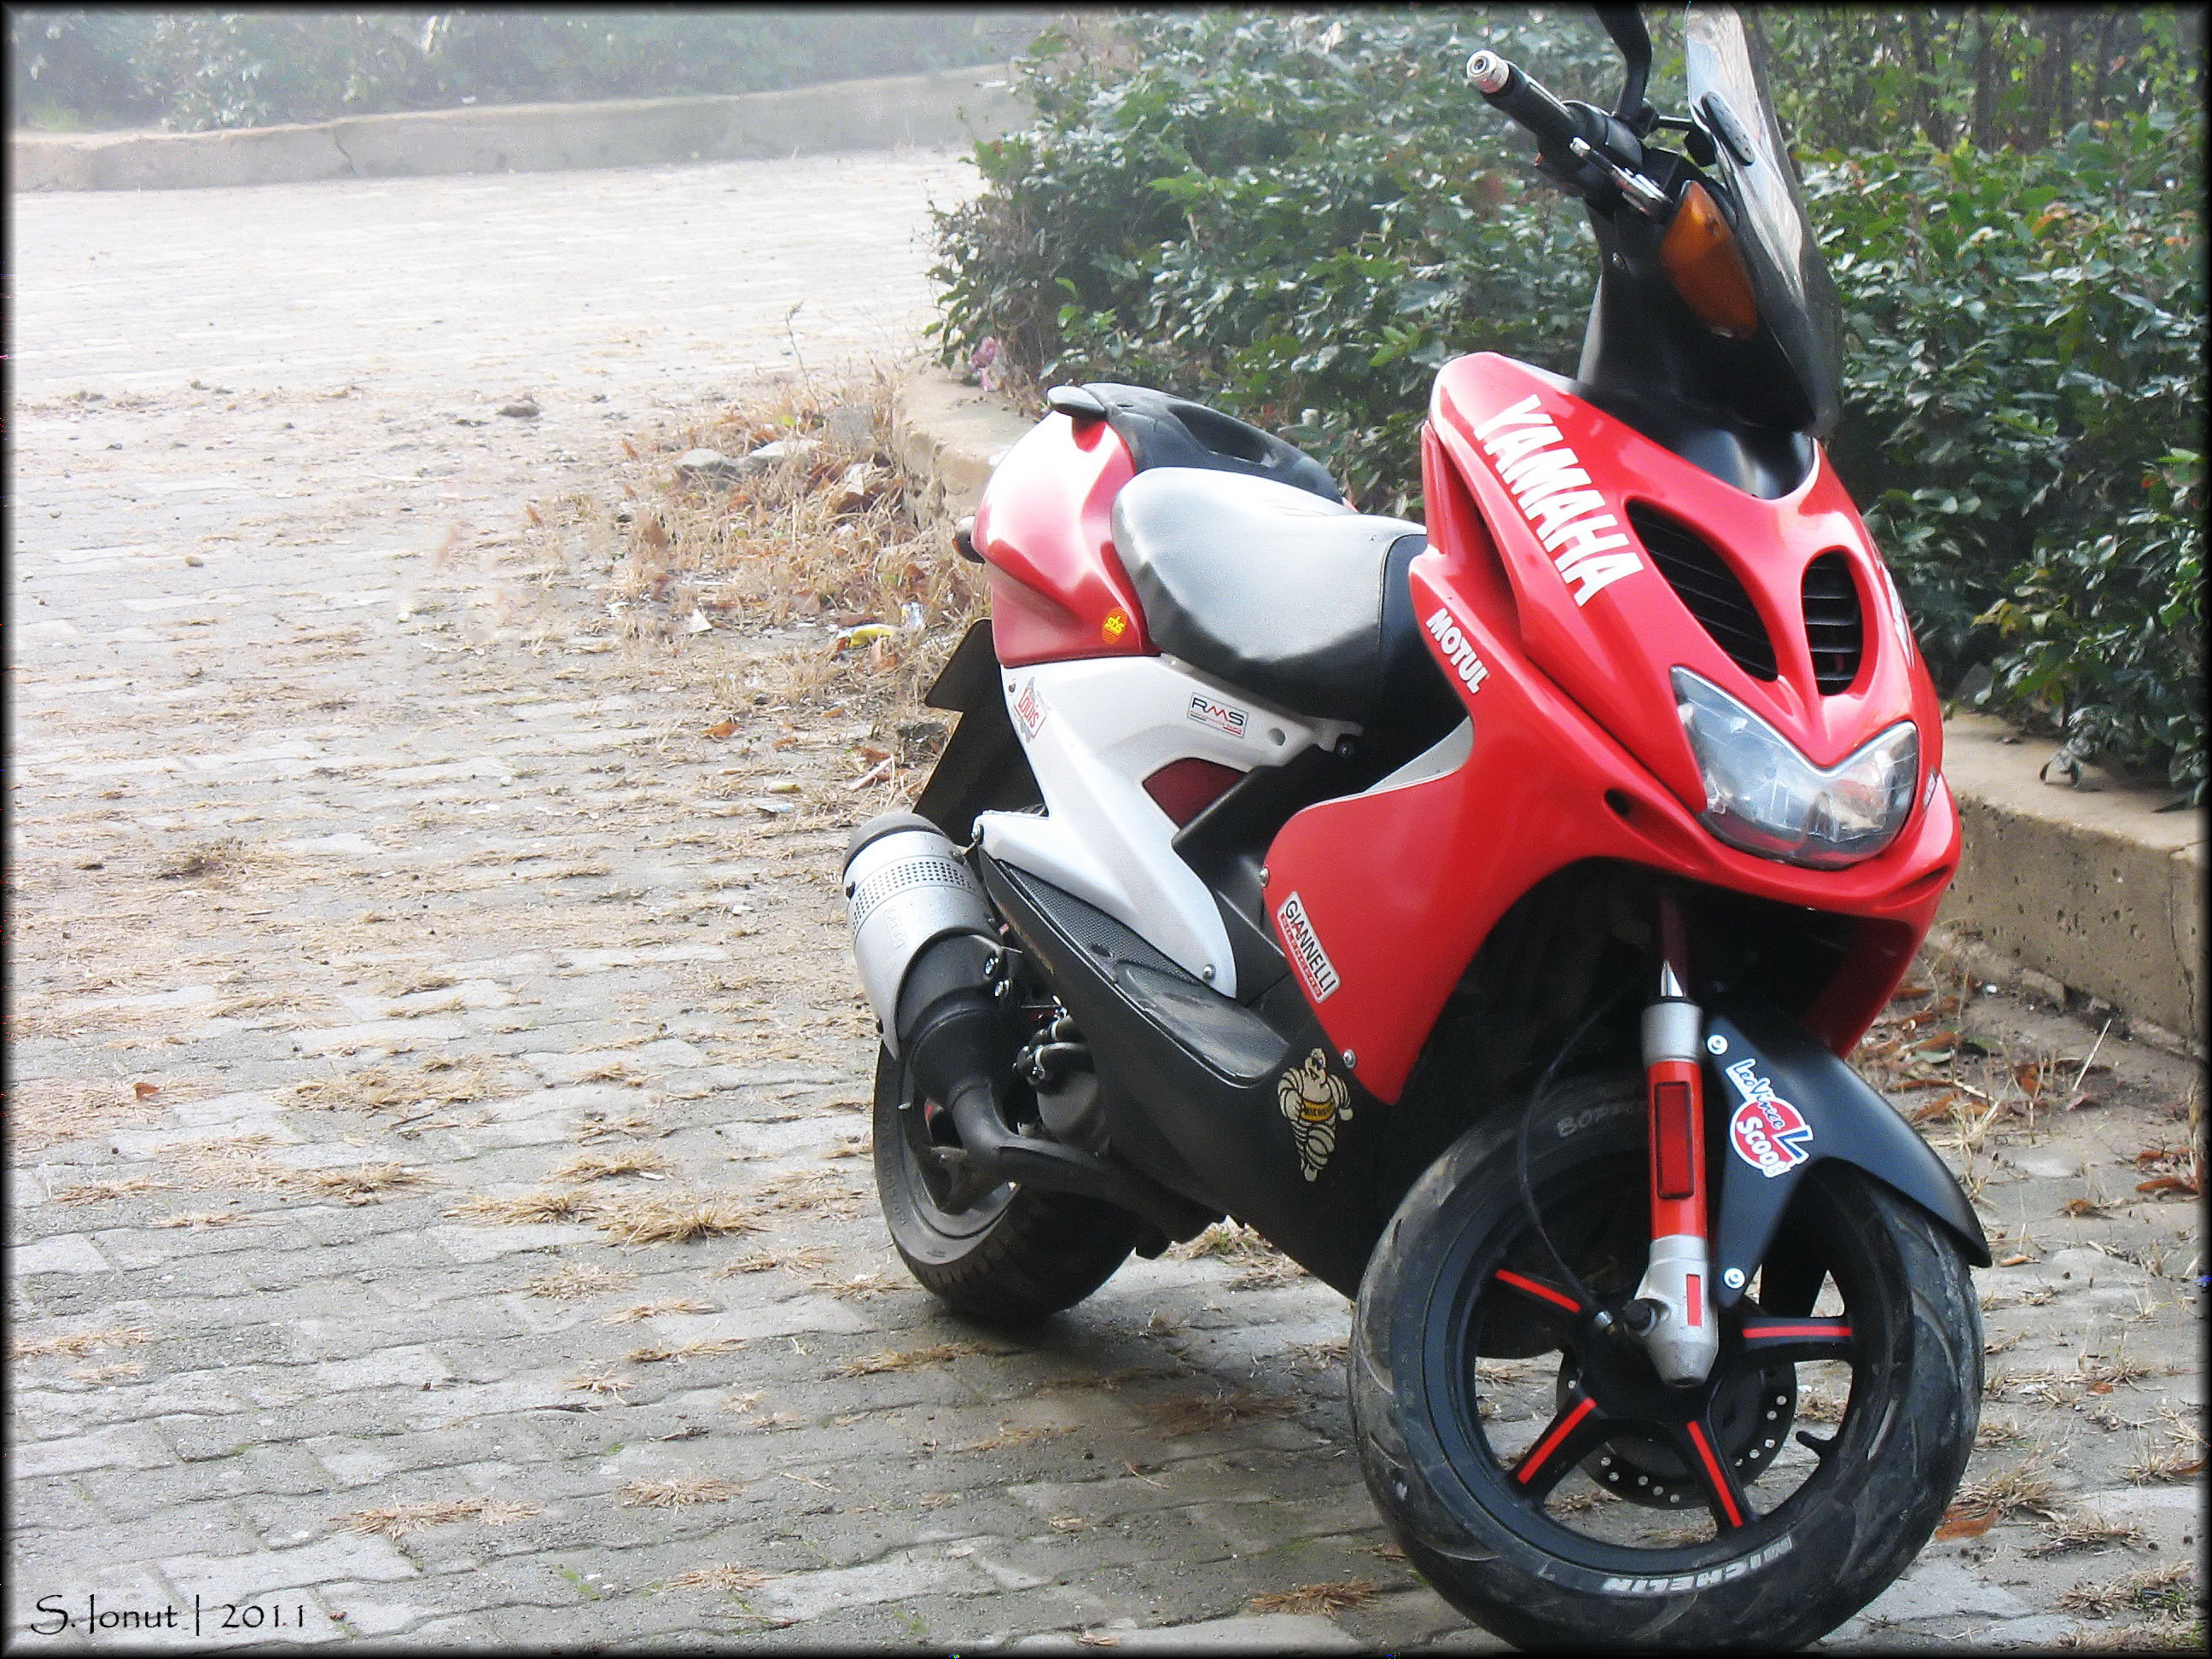 R Yamaha For Sale Cape Town